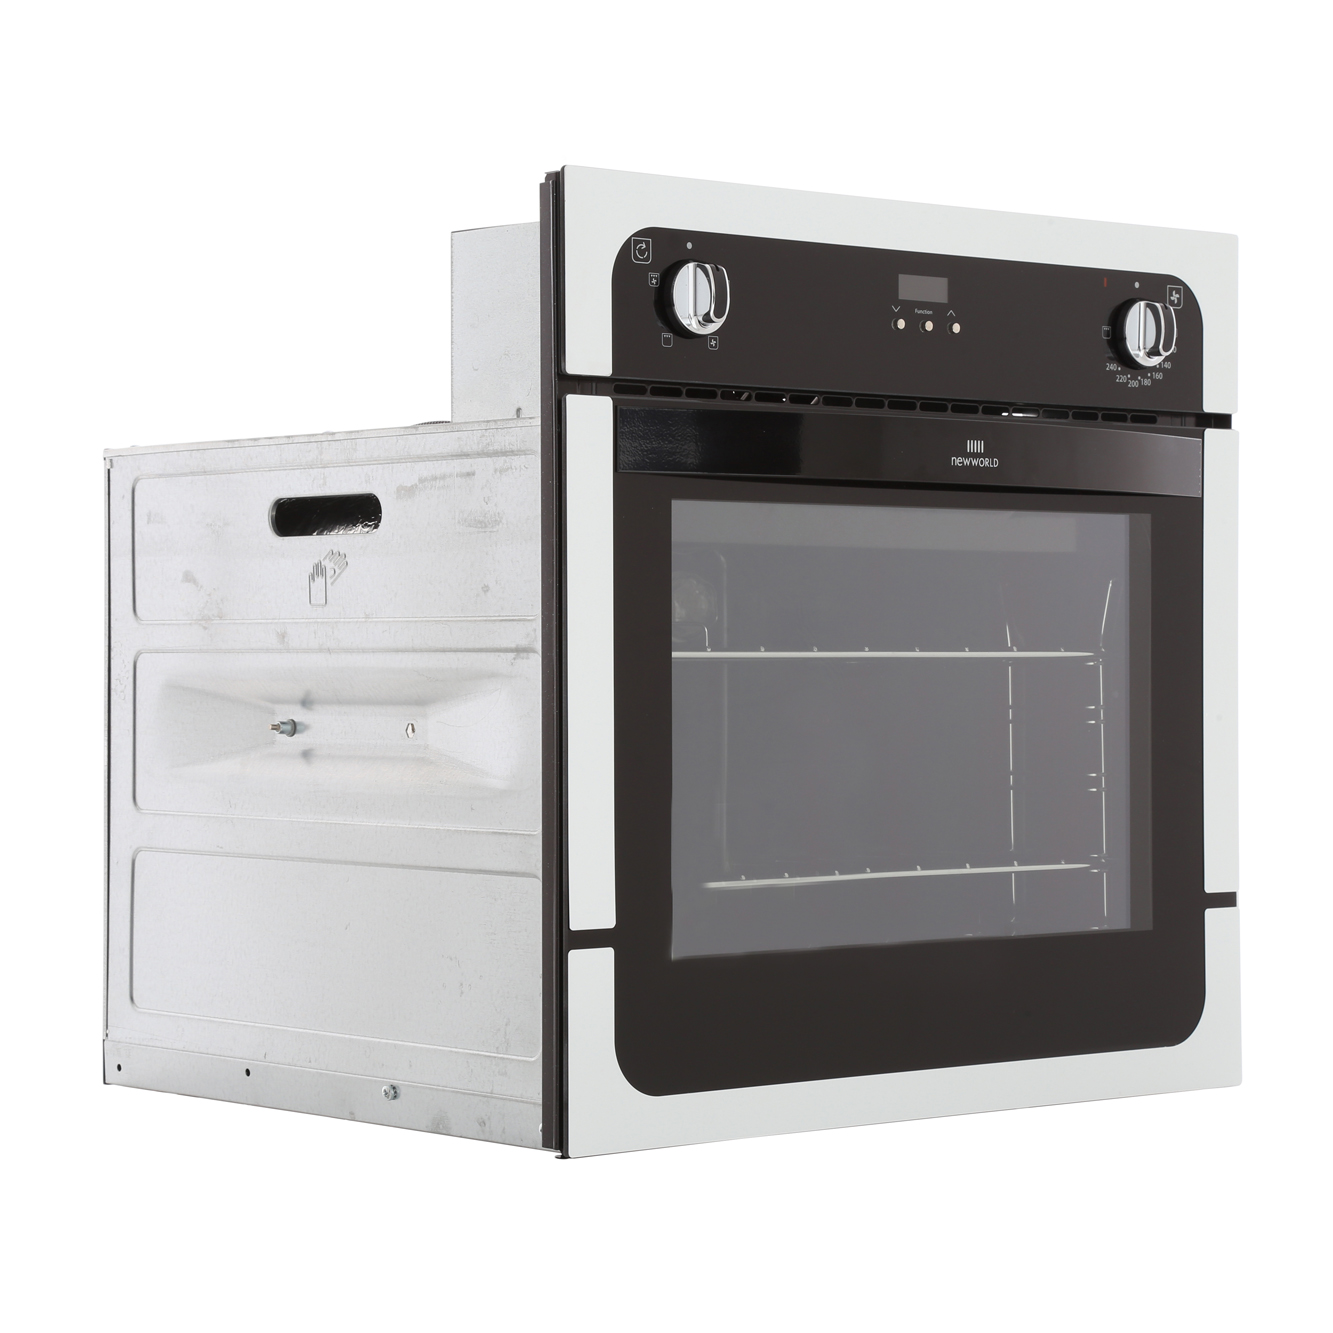 New World Kitchen Appliances Buy New World Nw601fp White Single Built In Electric Oven